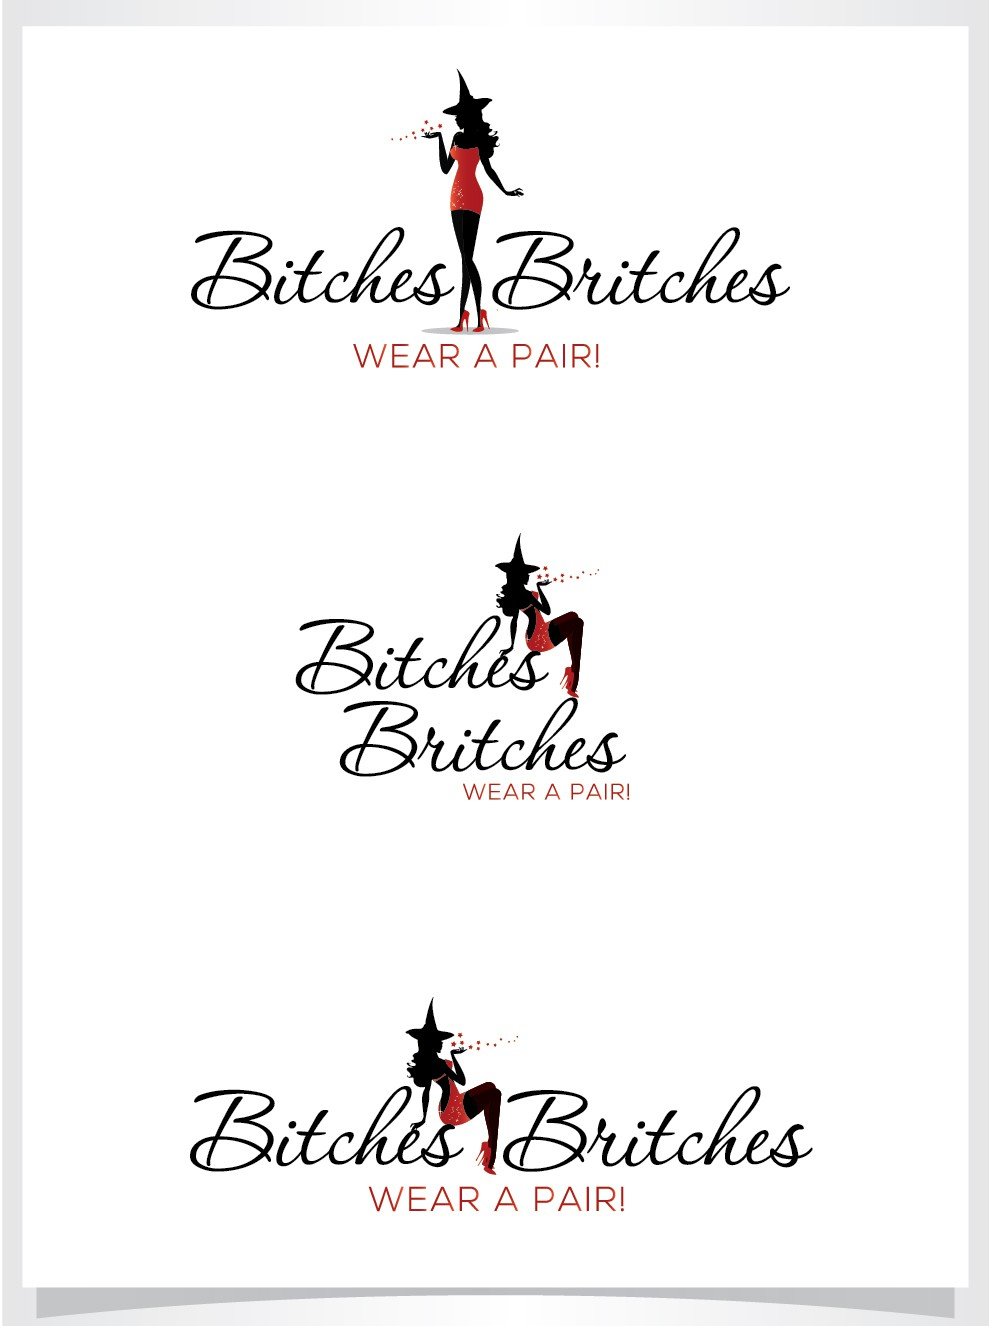 Bitch? Oh,YES! Design the mark that powerful, strong, good women secretly wear!